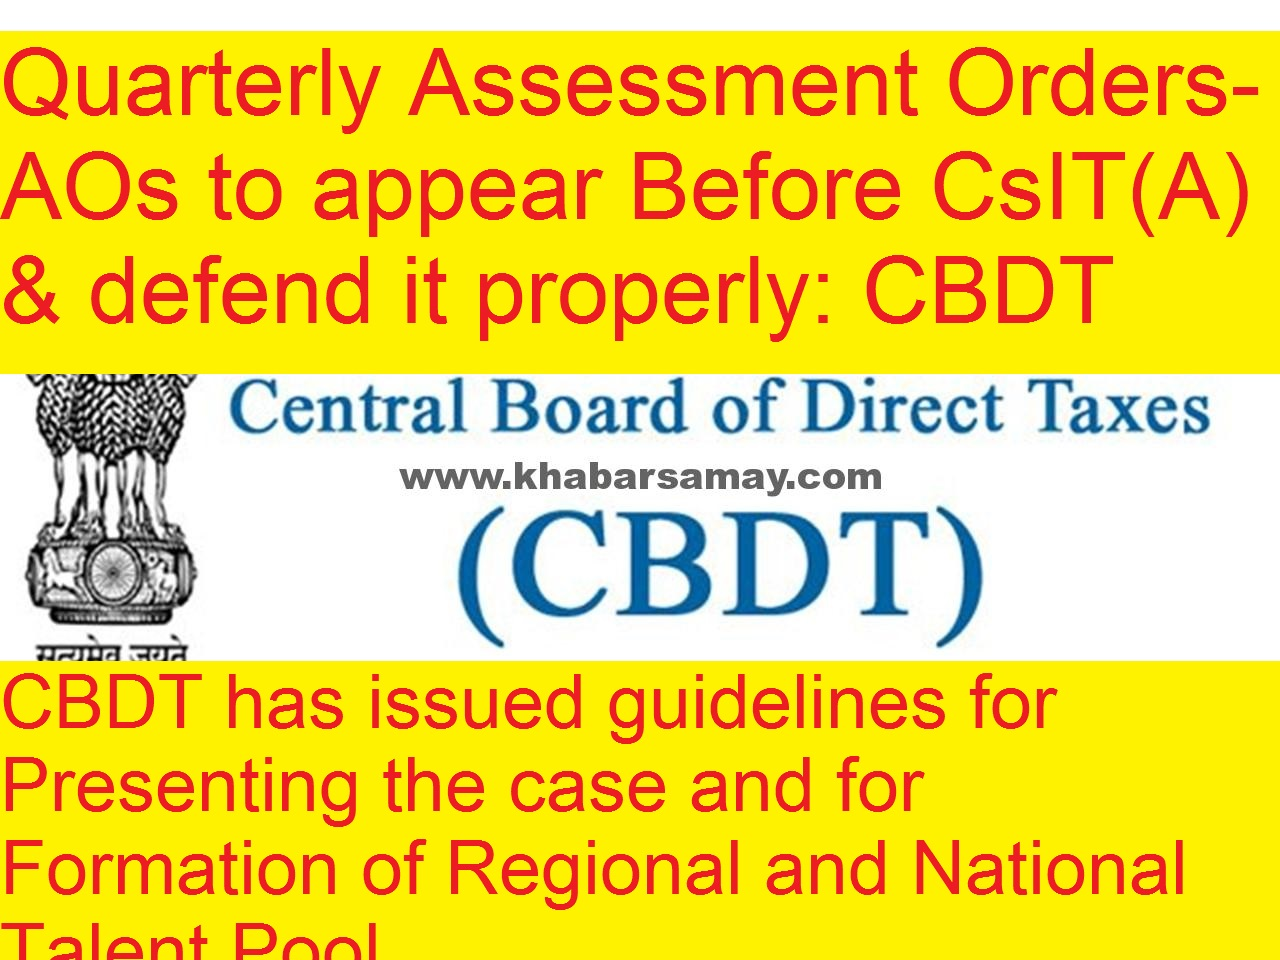 Quarterly Assessment Orders- AOs to appear Before CsIT(A) & defend it properly CBDT